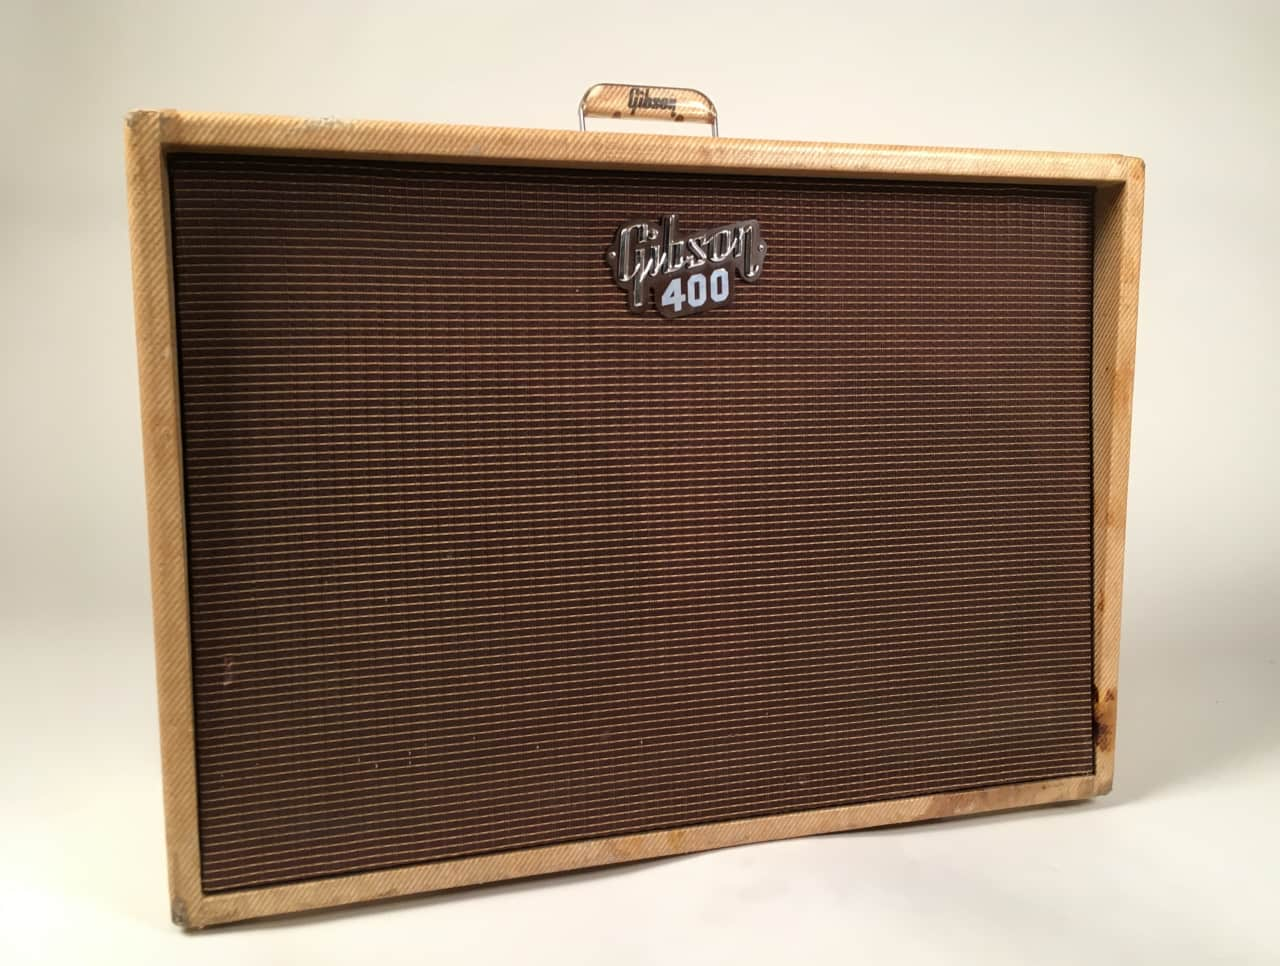 vintage 1961 tweed gibson super 400 model ga 400 amplifier reverb. Black Bedroom Furniture Sets. Home Design Ideas